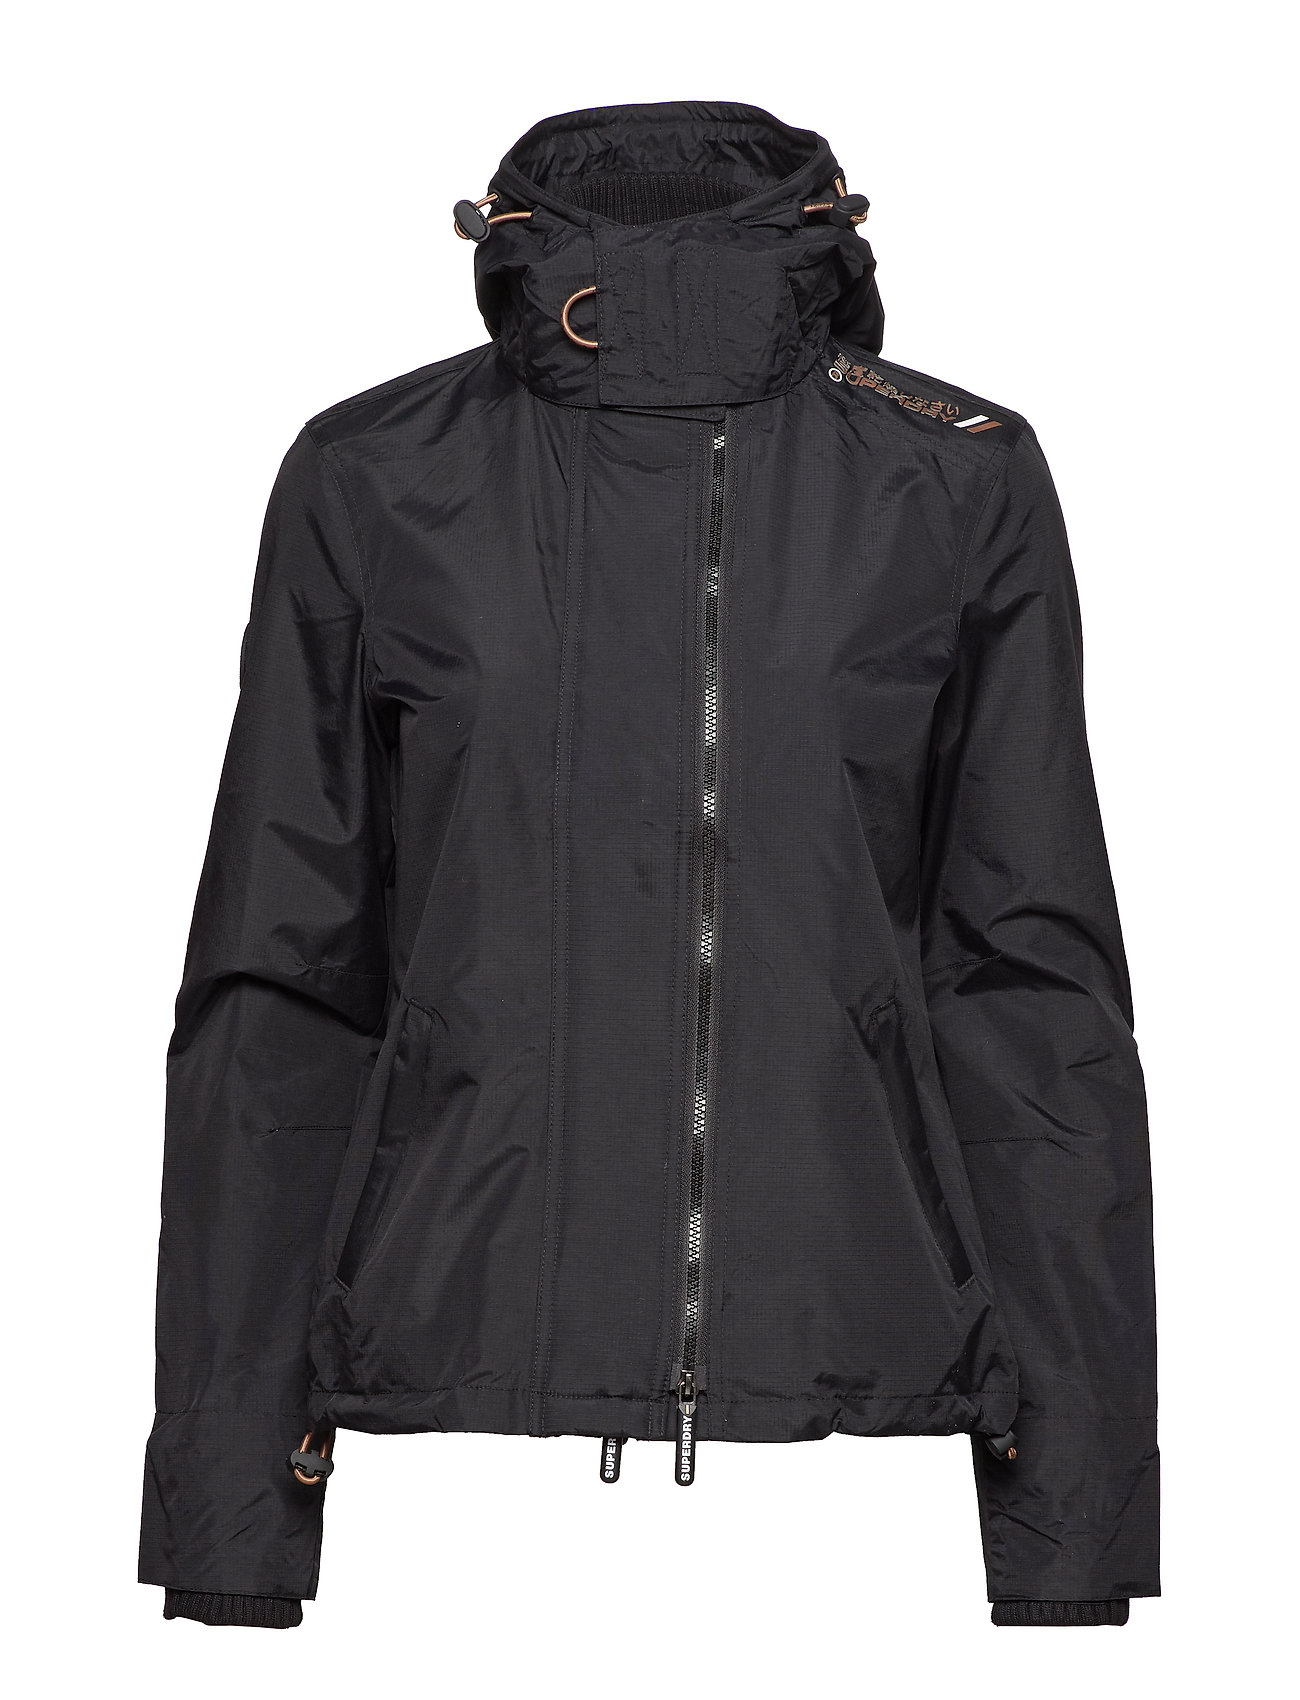 Hooded Wndcheaterblack Tech GemstoneSuperdry Pop Zip lurex TOXZiPkuw